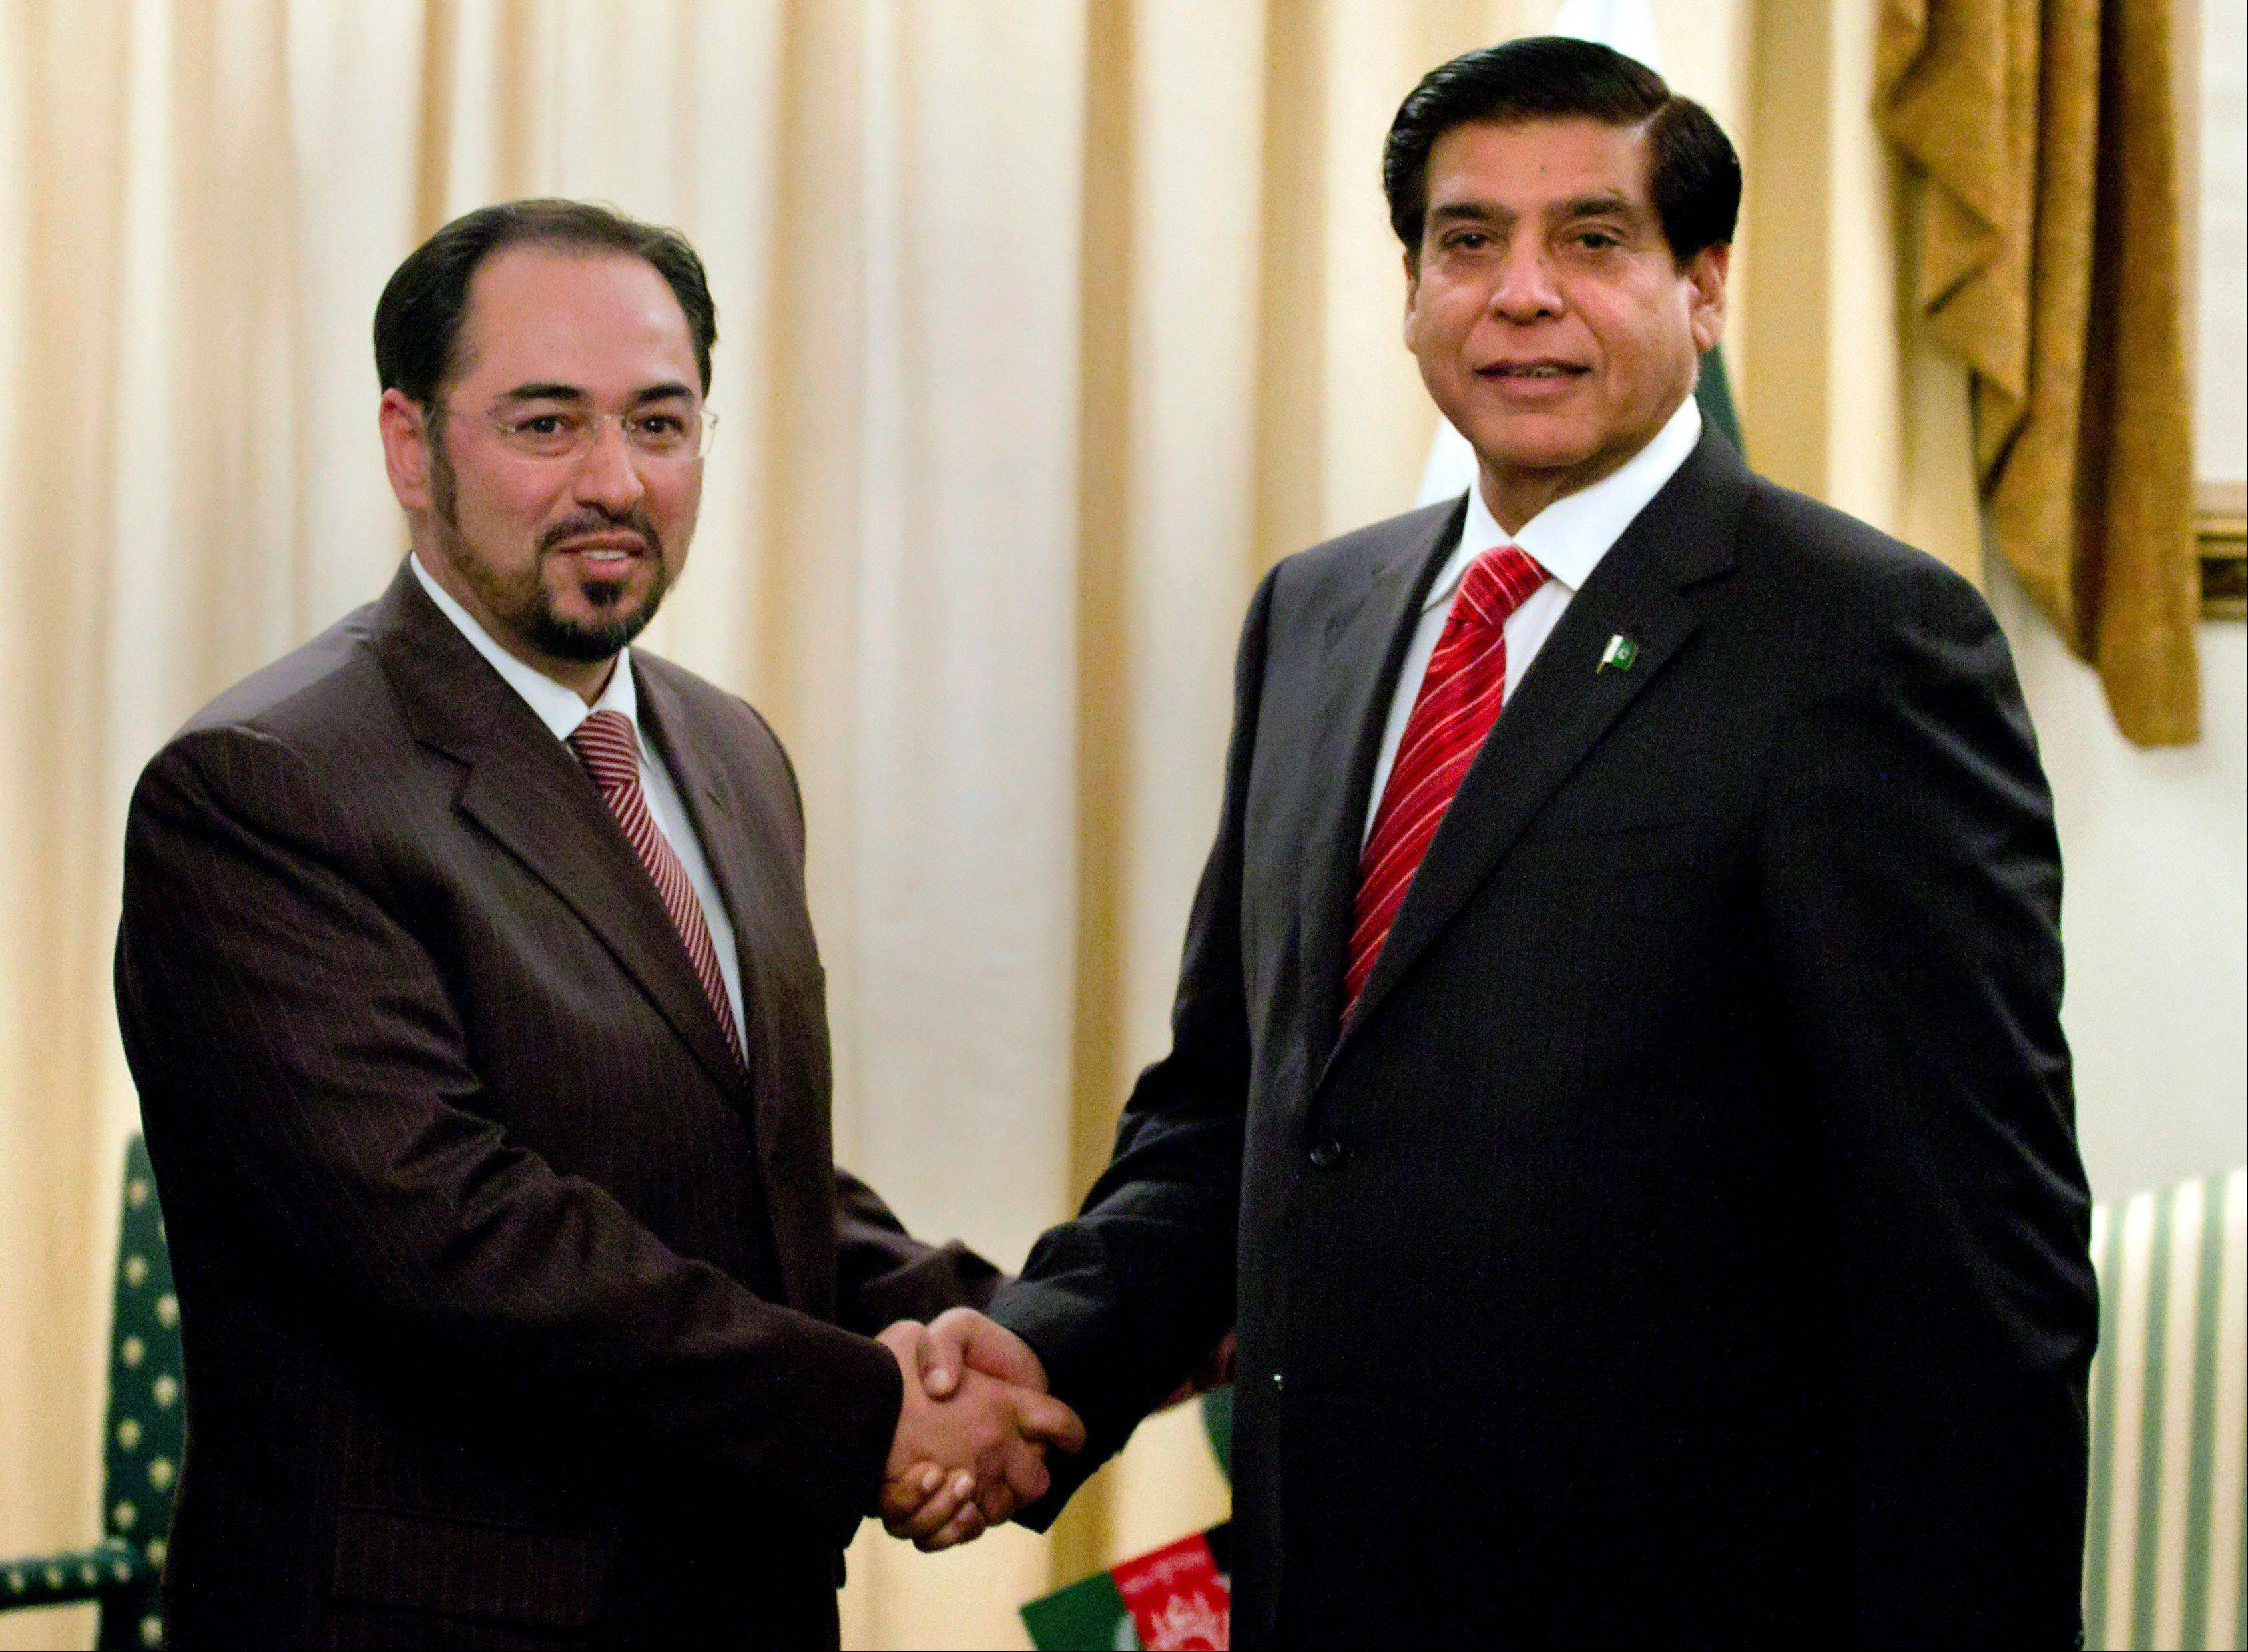 Salahuddin Rabbani, left, head of Afghanistan High Peace Council, shakes hand with Pakistan's Prime Minister Raja Pervaiz Ashraf, for the benefit of the media prior to their meeting in Islamabad, Pakistan, Monday. They were to discuss peace and the reconciliation process in Afghanistan.